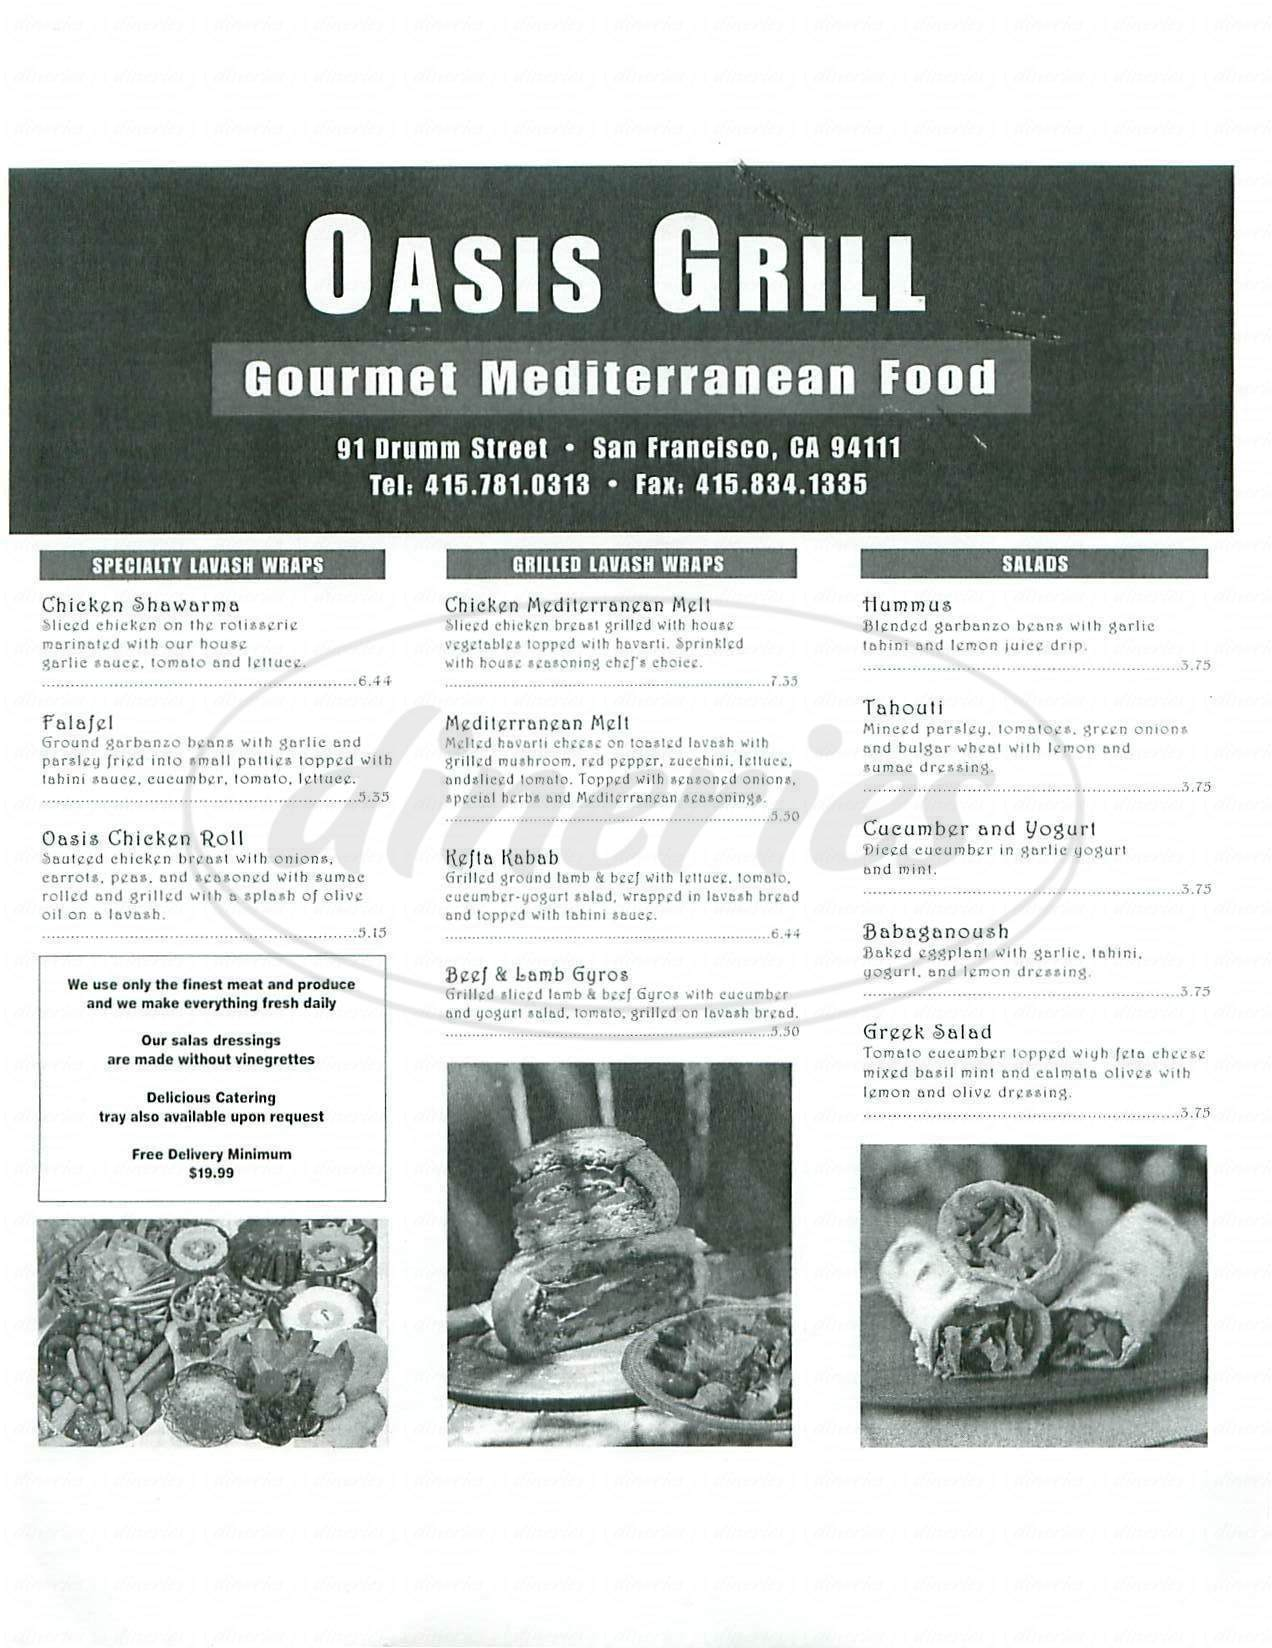 menu for Oasis Grill